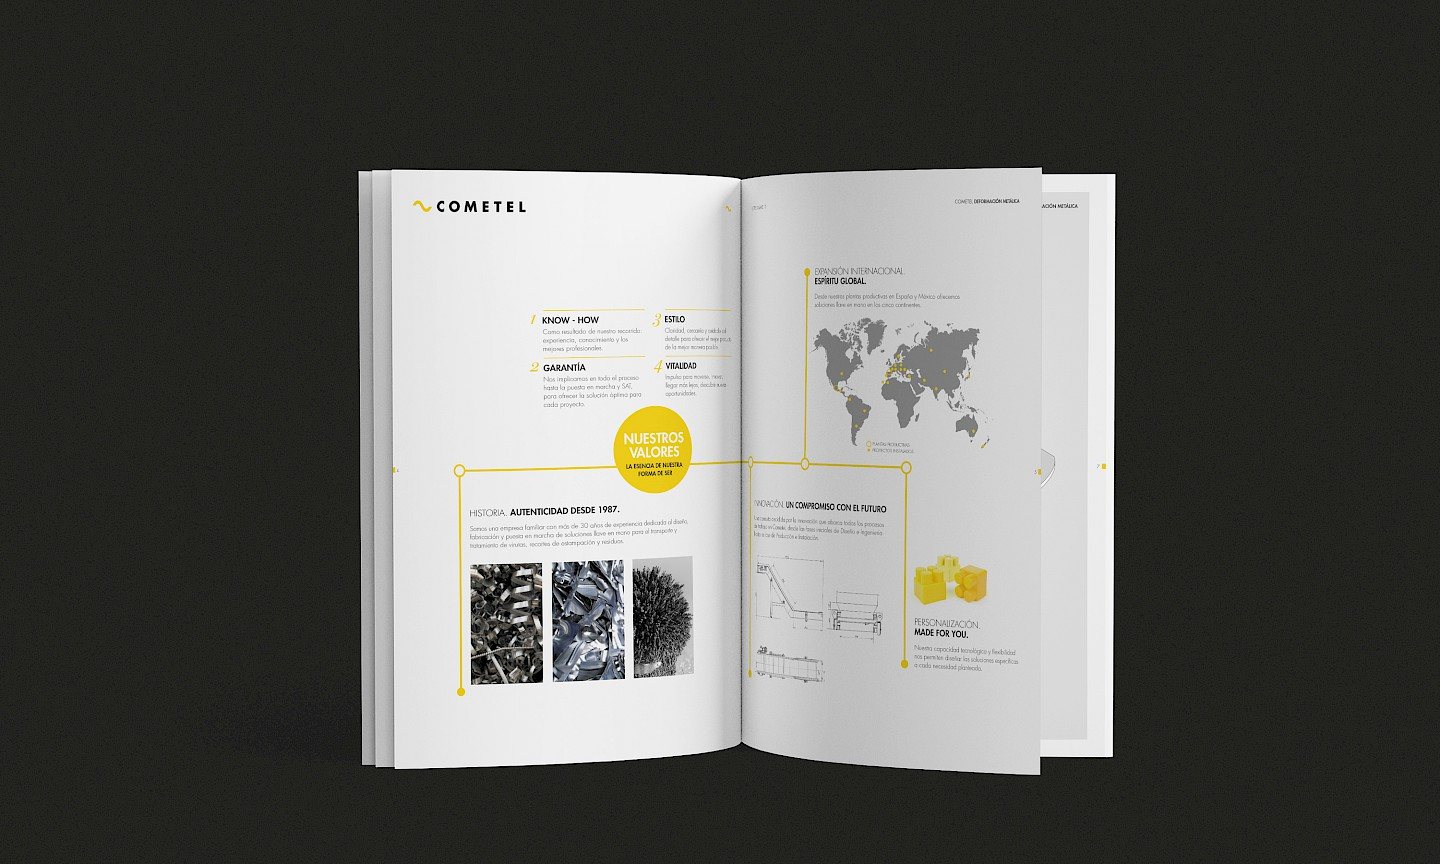 03 design catalogo move technology branding cometel